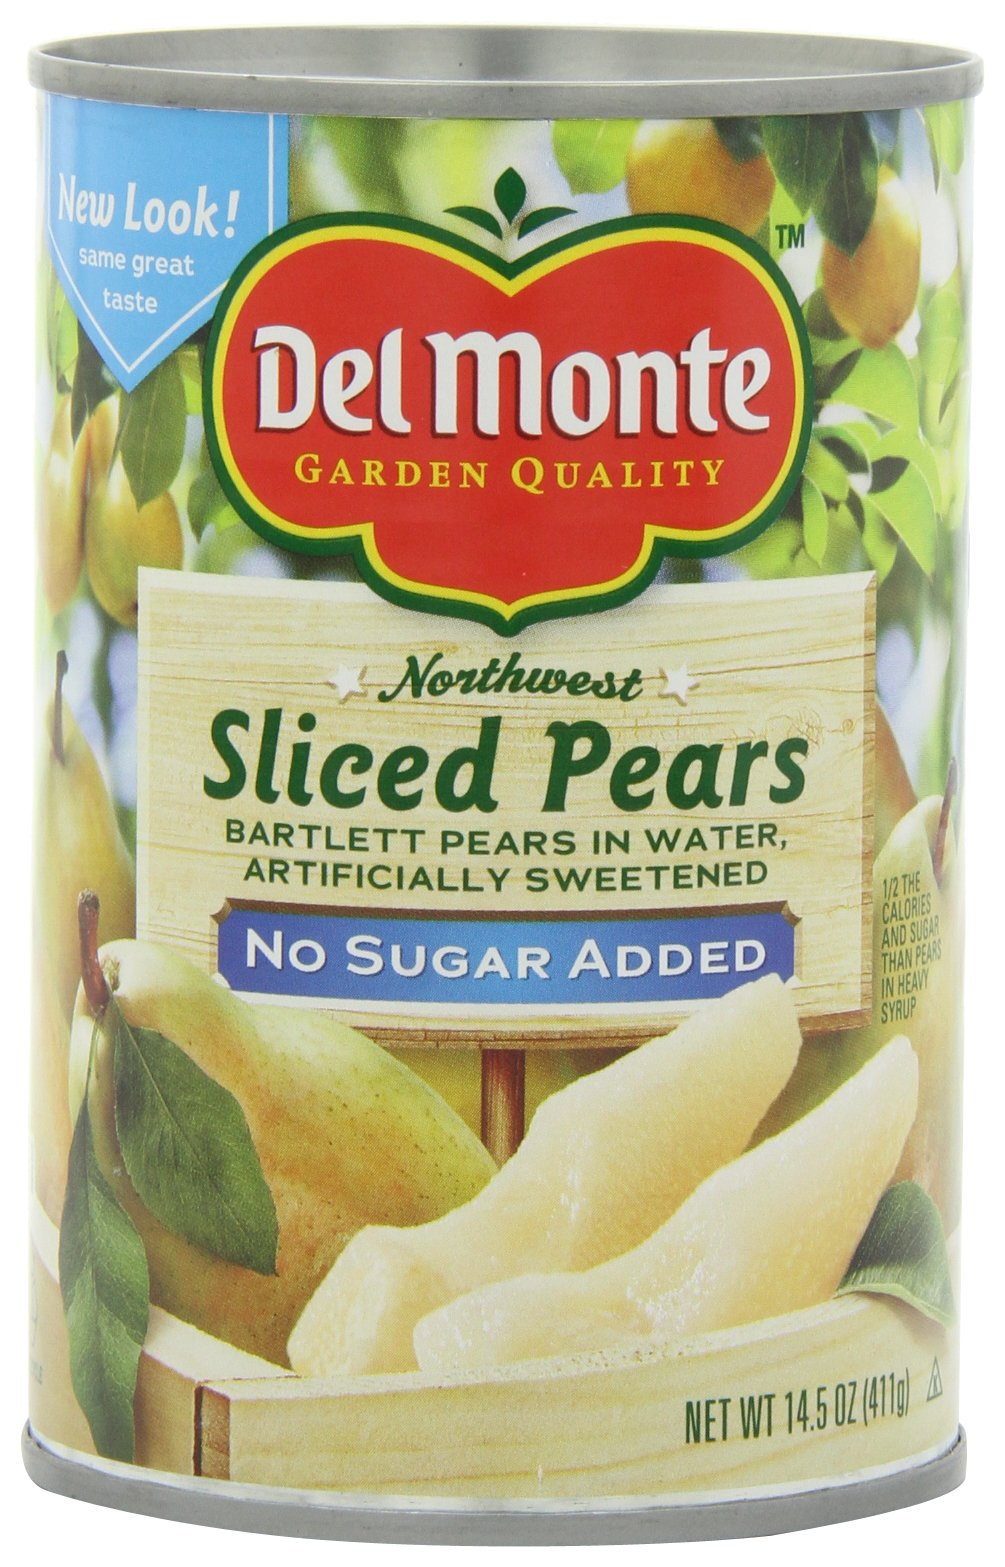 Del Monte Sliced Pears Packed in Water Artificailly Sweetened, No Sugar Added, 14.5-Ounce (Pack of 6) by Del Monte